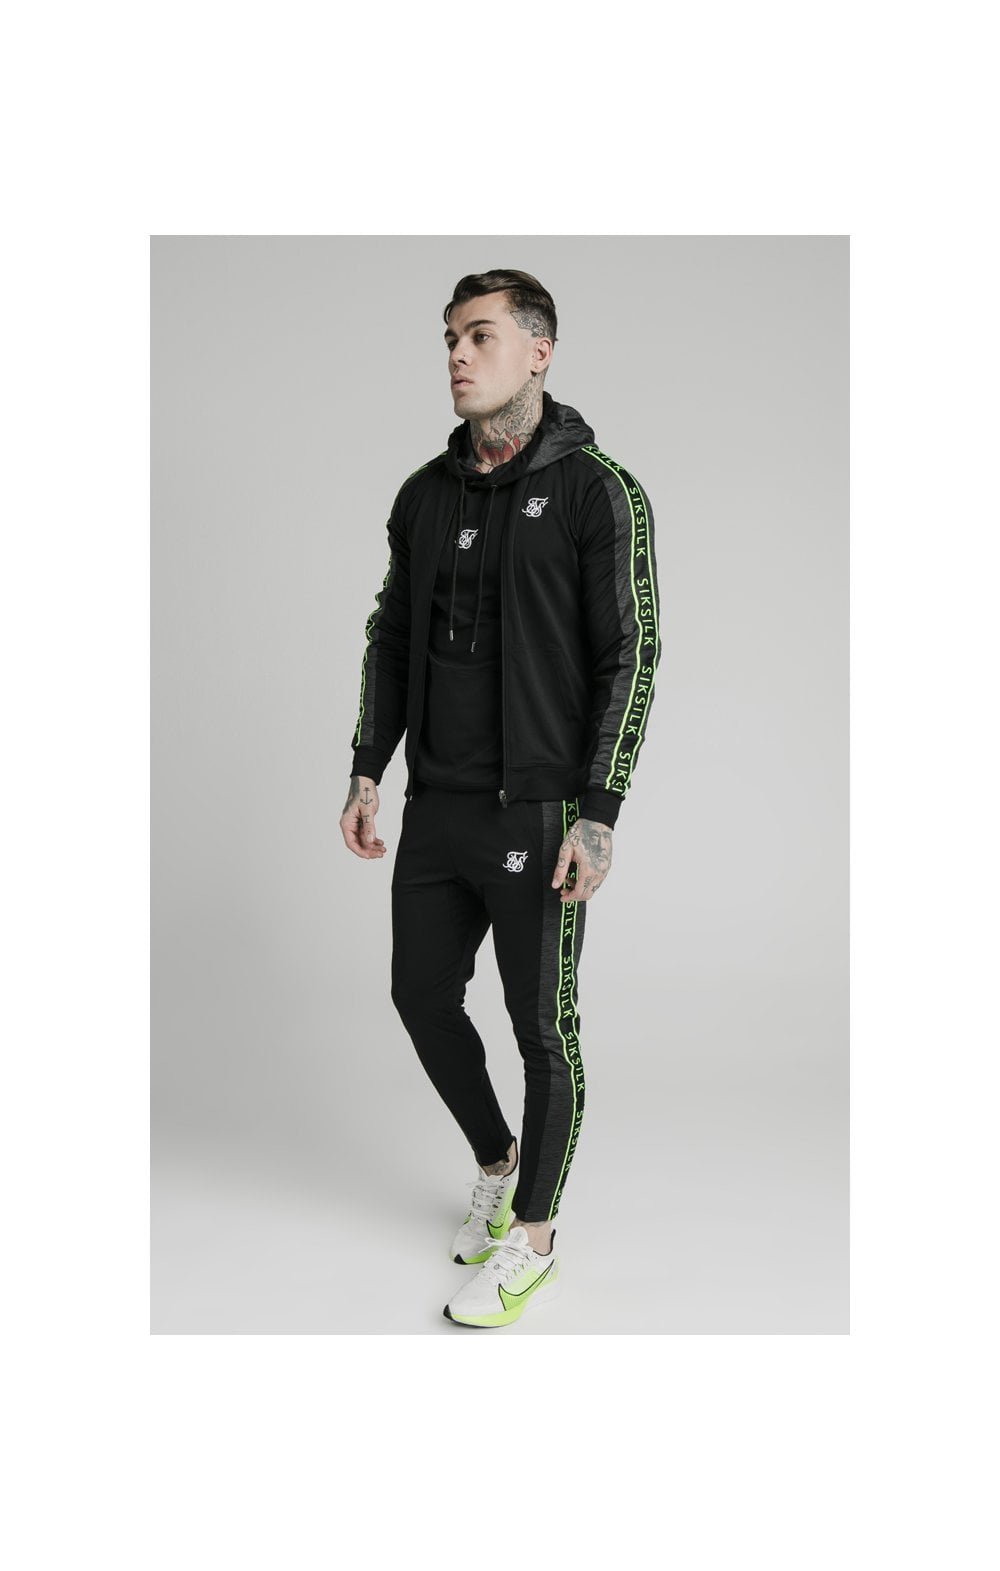 SikSilk Hyper Tape Bomber Jacket - Black & Neon Fluro (2)